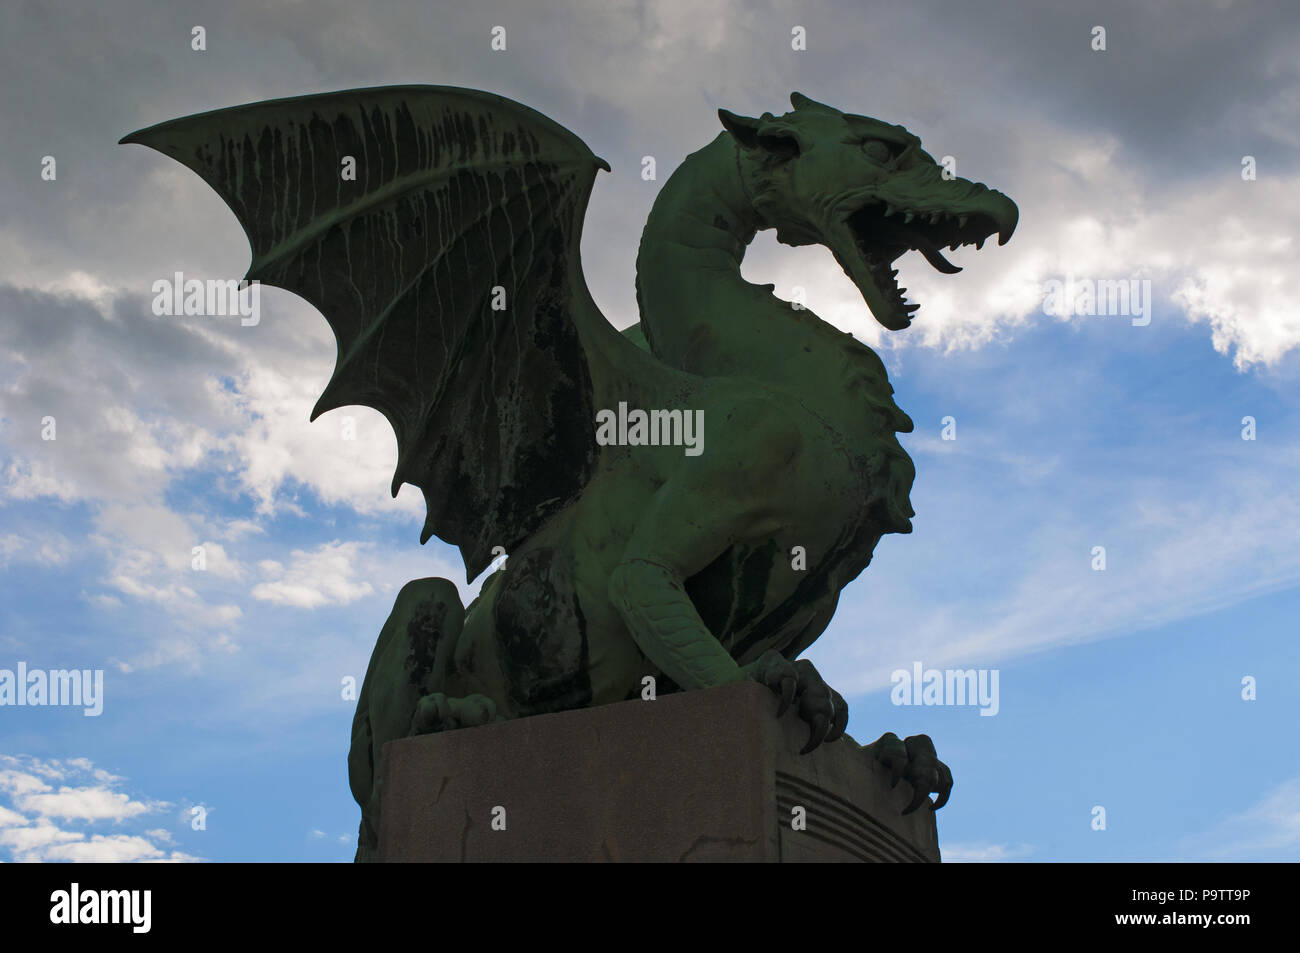 Estatua Del Dragon Por Jurij Zaninovic Sobre El Puente Dragon